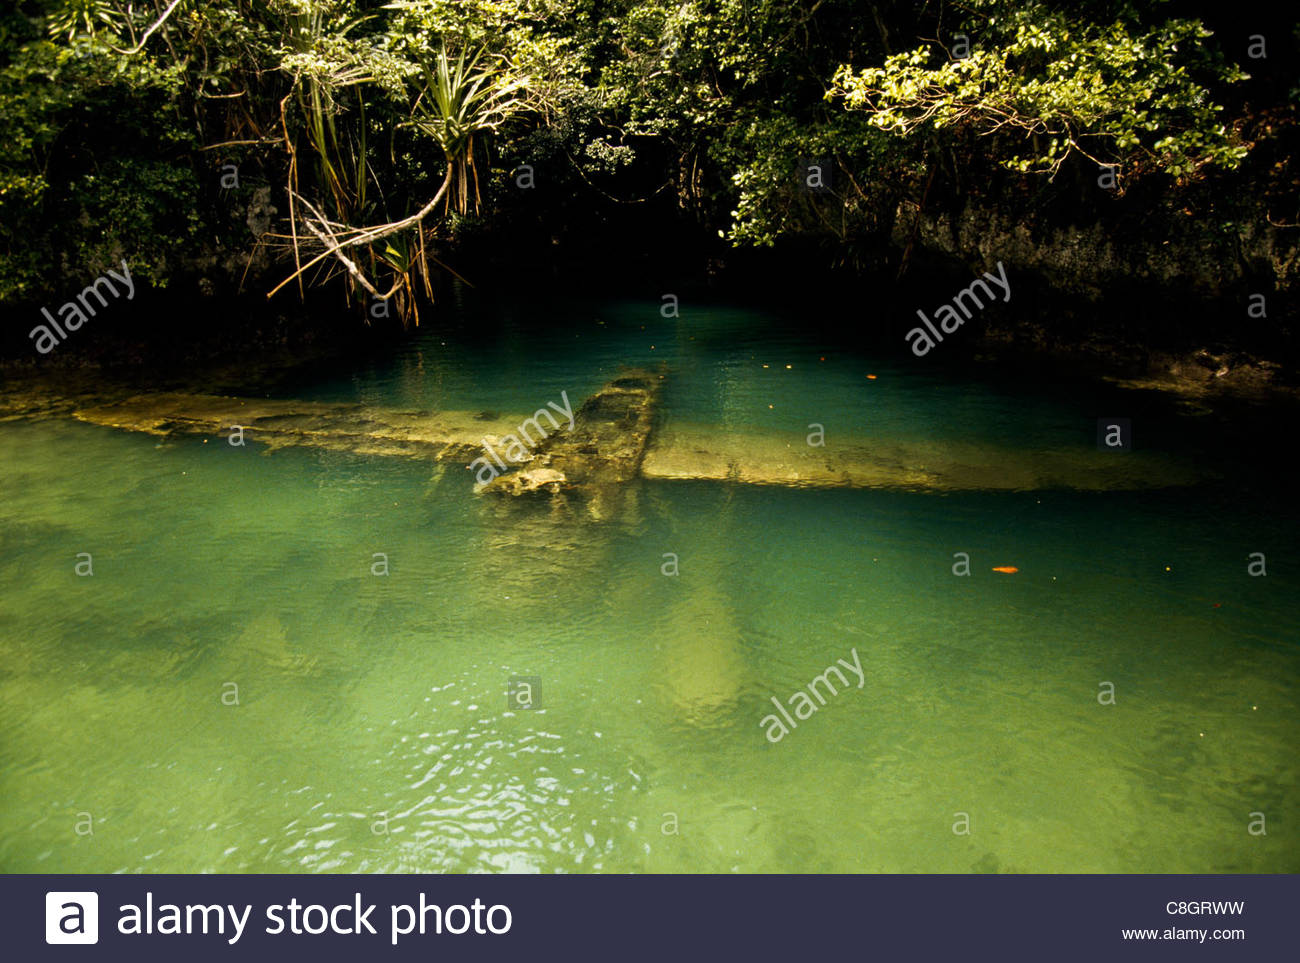 A World War Two military seaplane in a shallow lagoon. - Stock Image